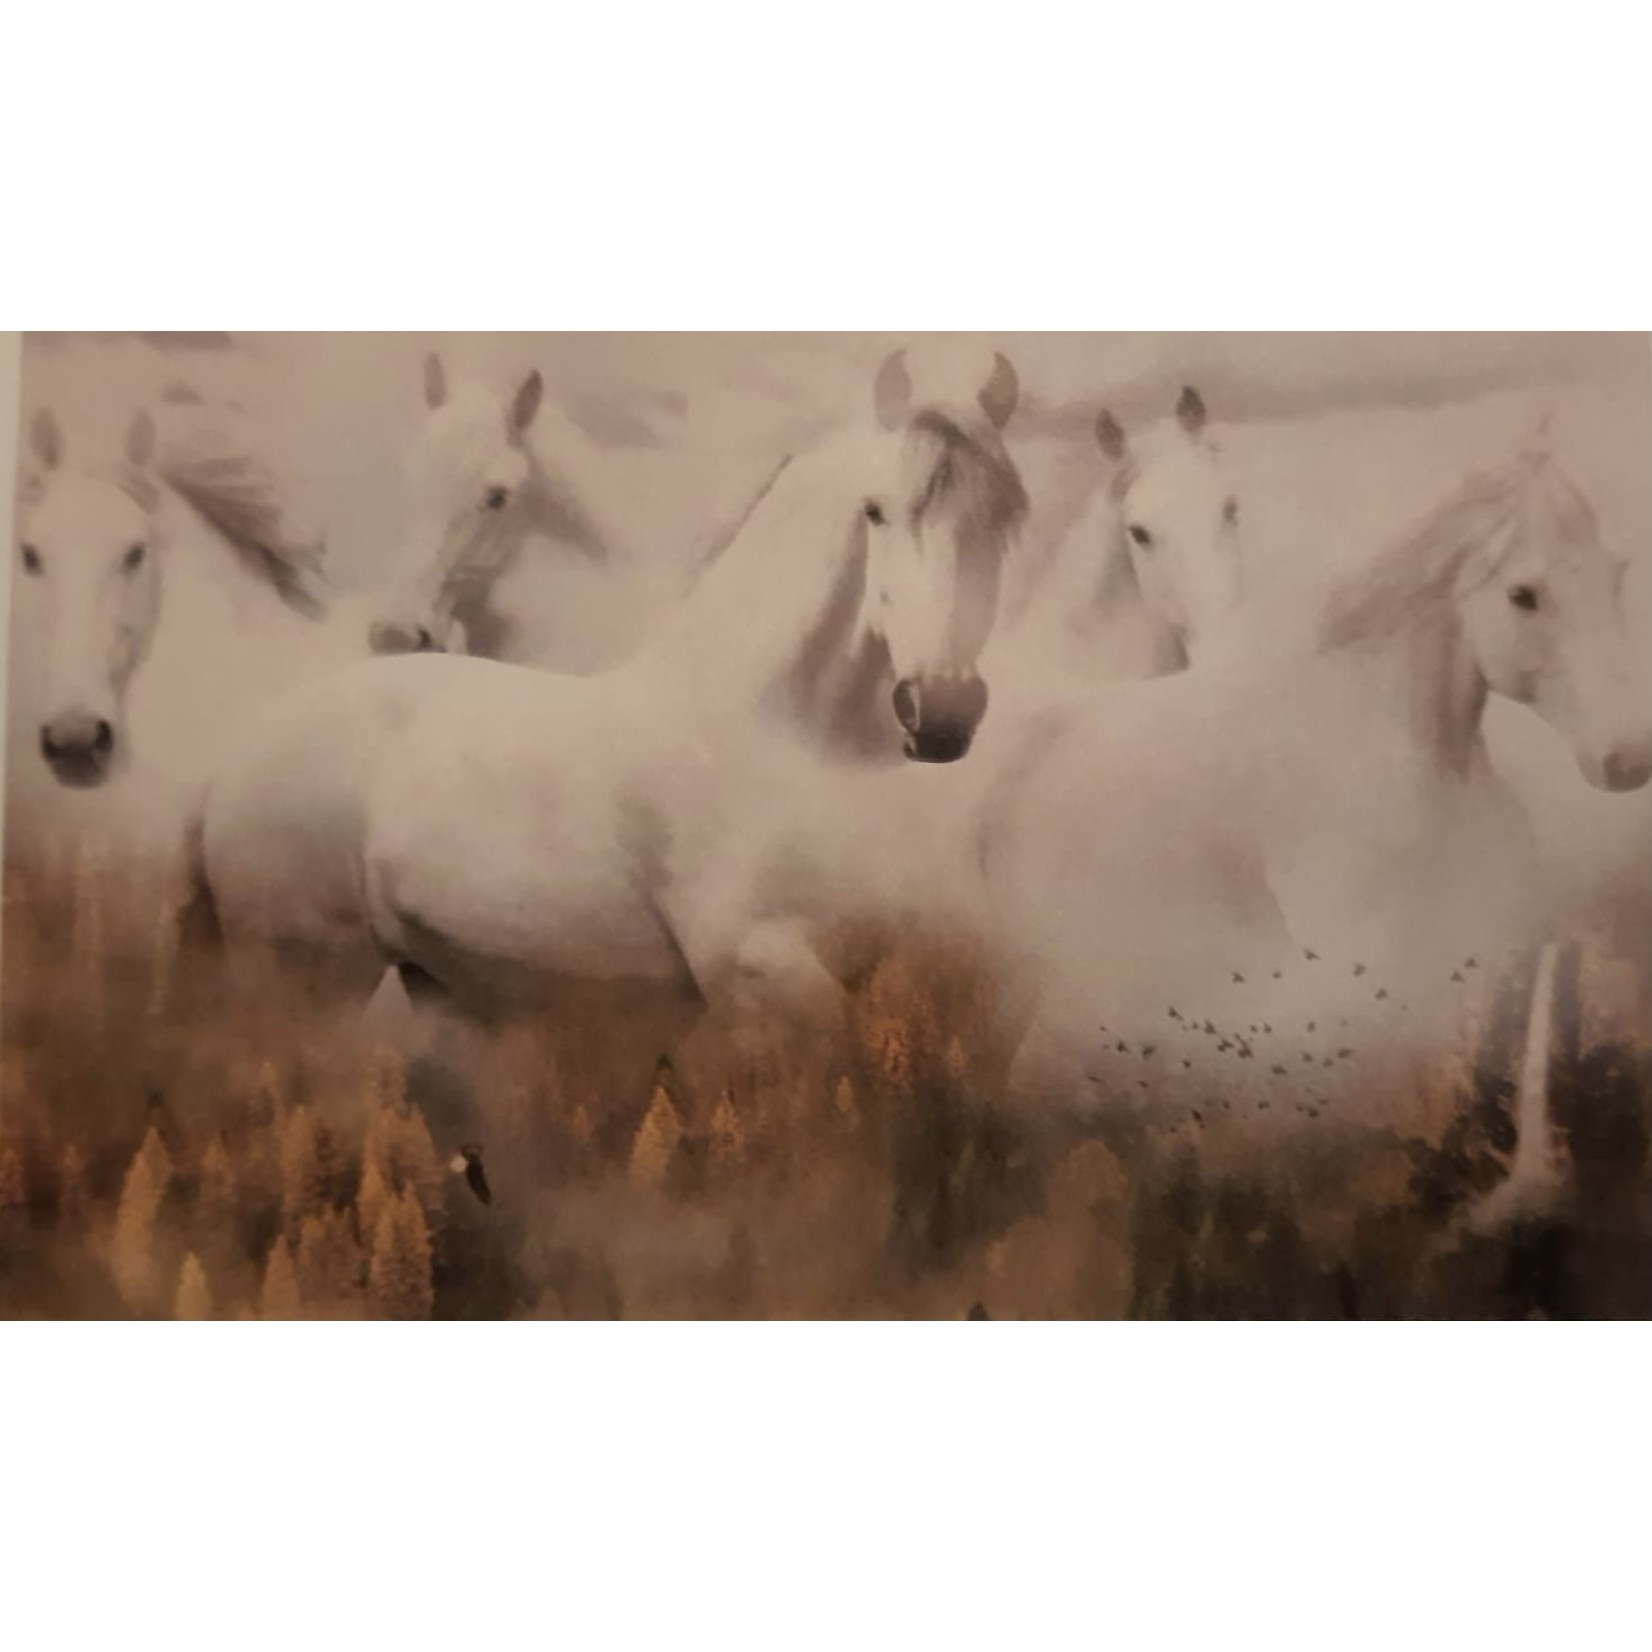 Hoffman Fabrics Call of the Wild - Horses in the Dawn - Panel